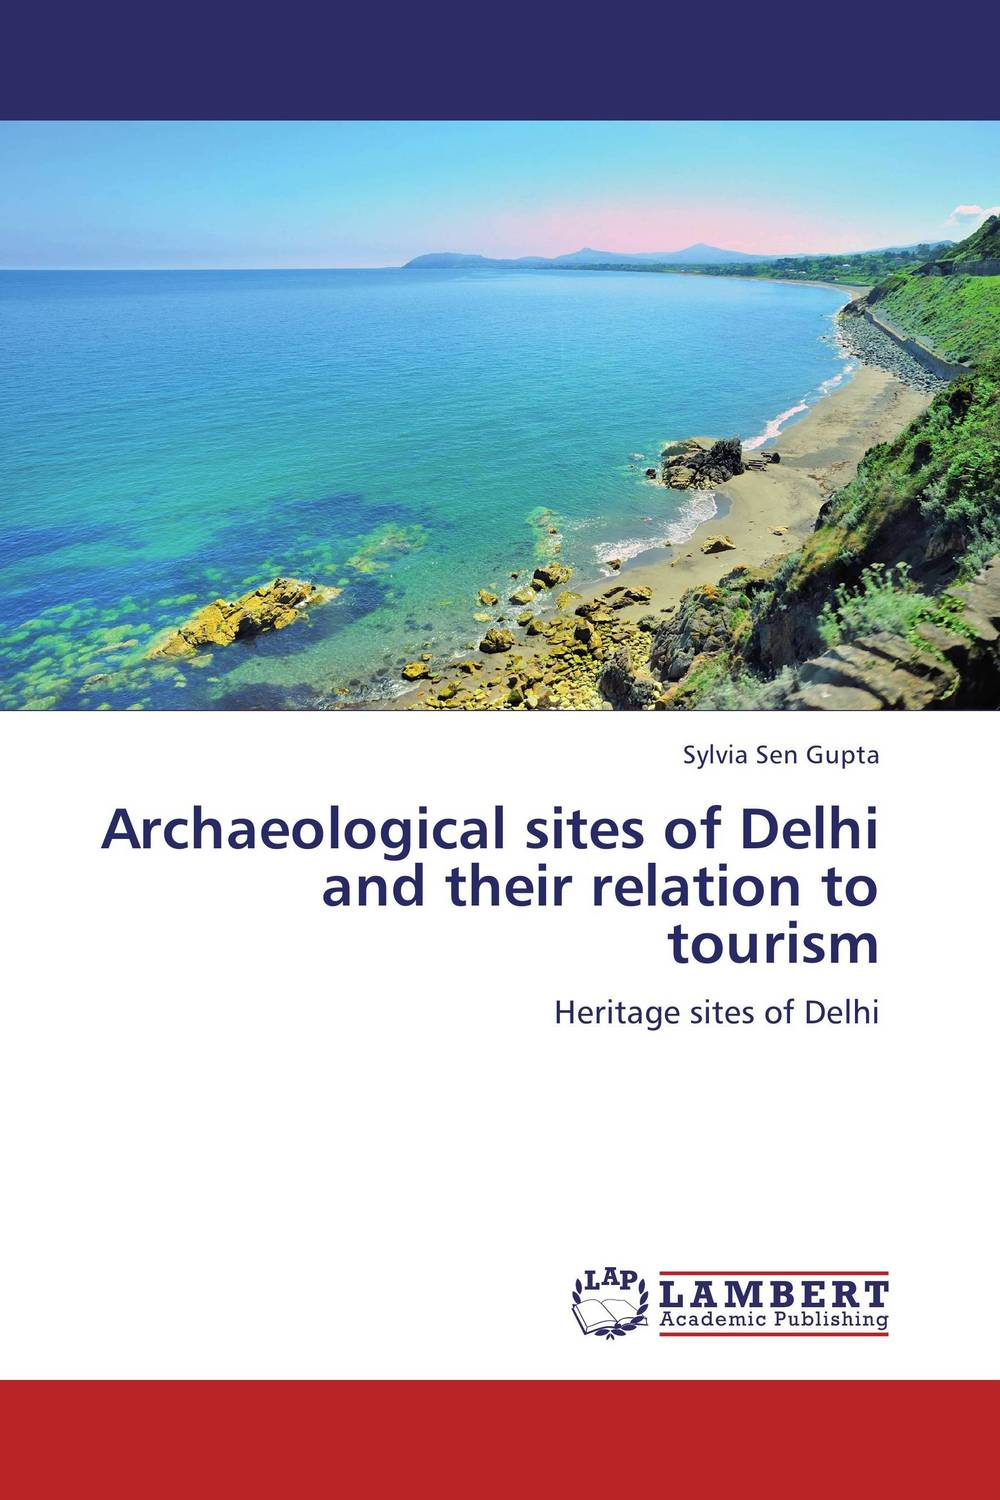 Archaeological sites of Delhi and their relation to tourism